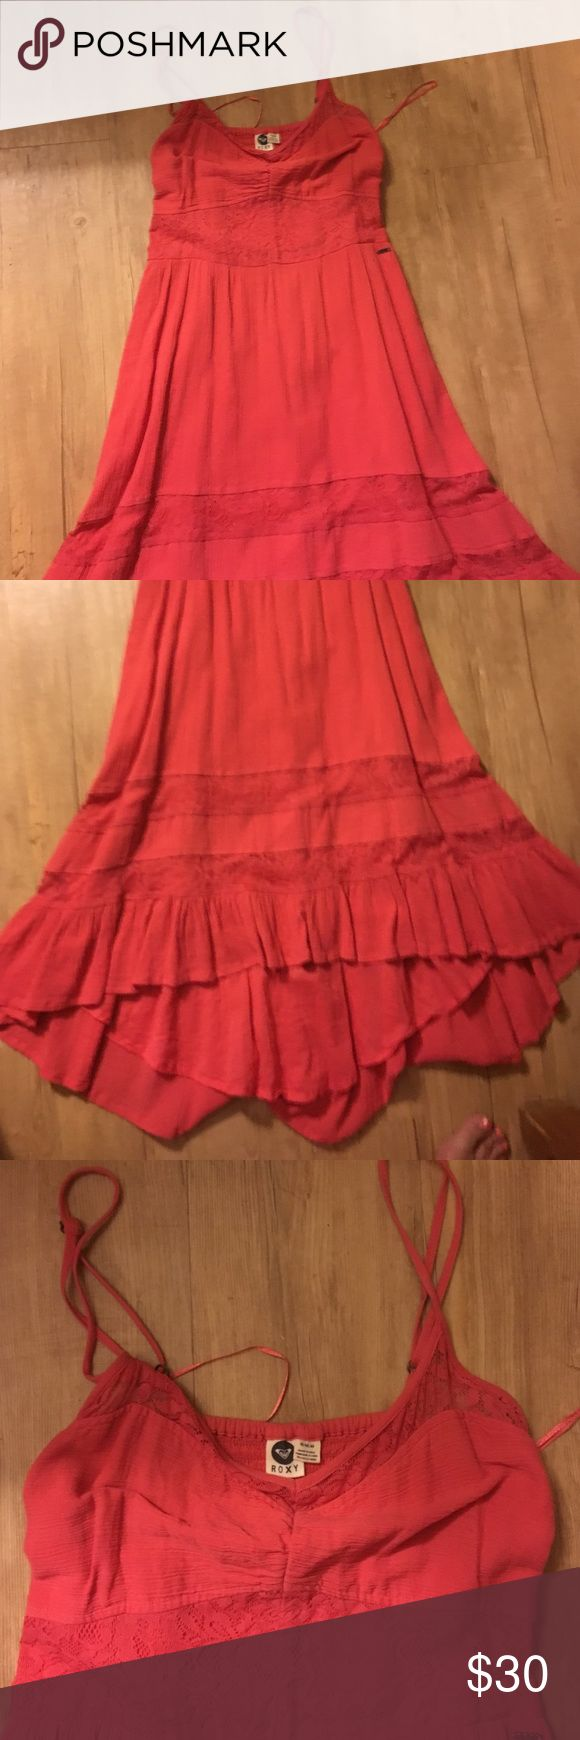 🎉Roxy coral dress🎉 Roxy coral colored dress size medium. Beautiful layered dress with lace. Looks super cute on! Excellent condition. Roxy Dresses High Low